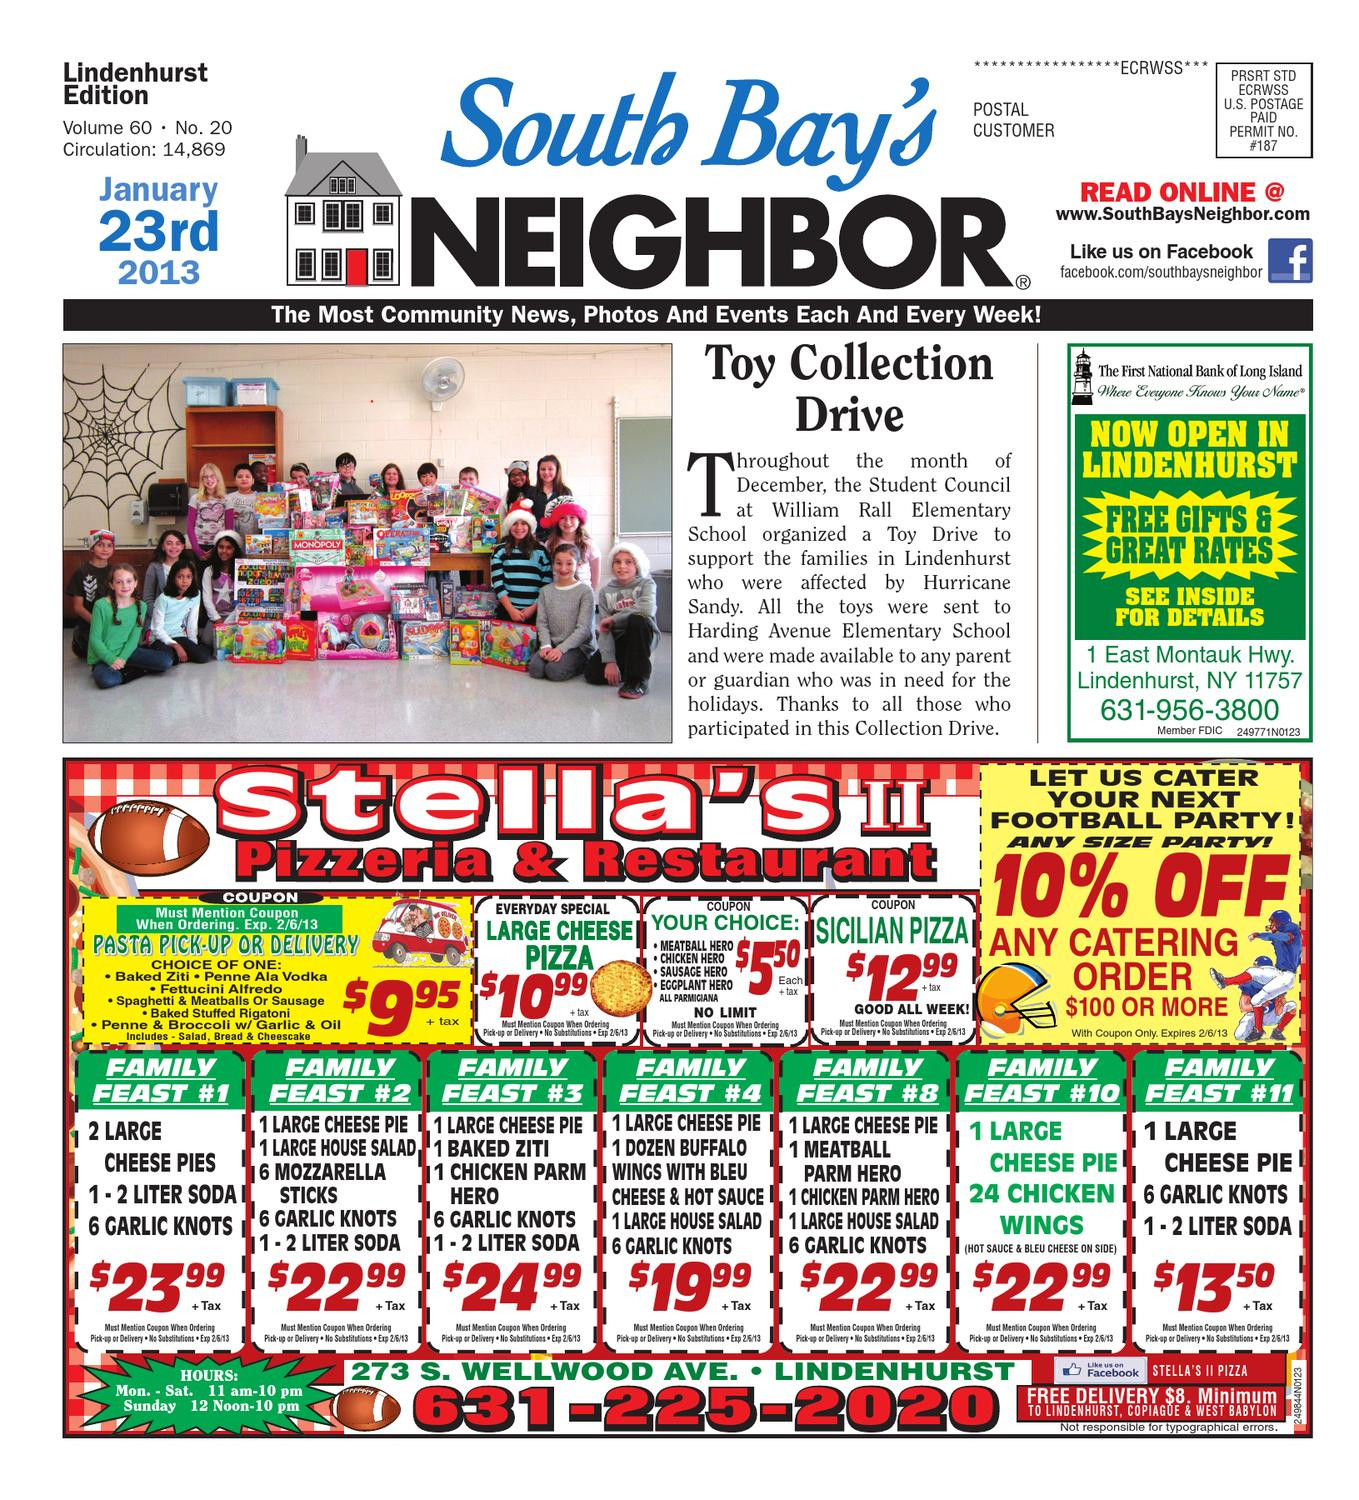 bruce hardwood floor cleaner coupon of january 23 2013 lindenhurst by south bays neighbor newspapers issuu intended for page 1